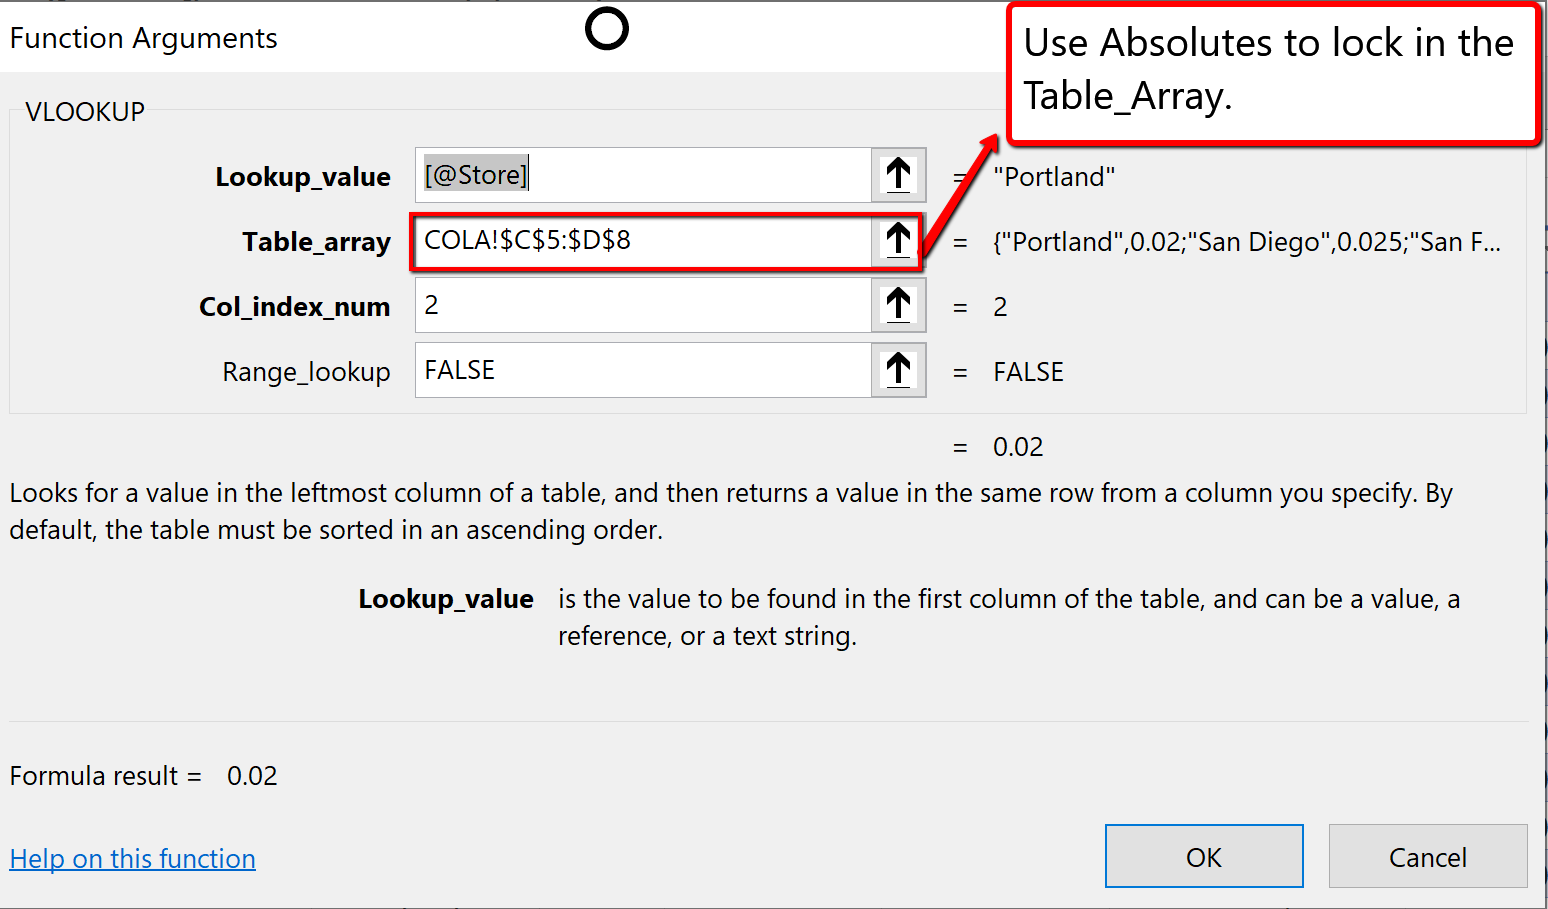 Screenshot of the VLOOKUP function argument dialogue box